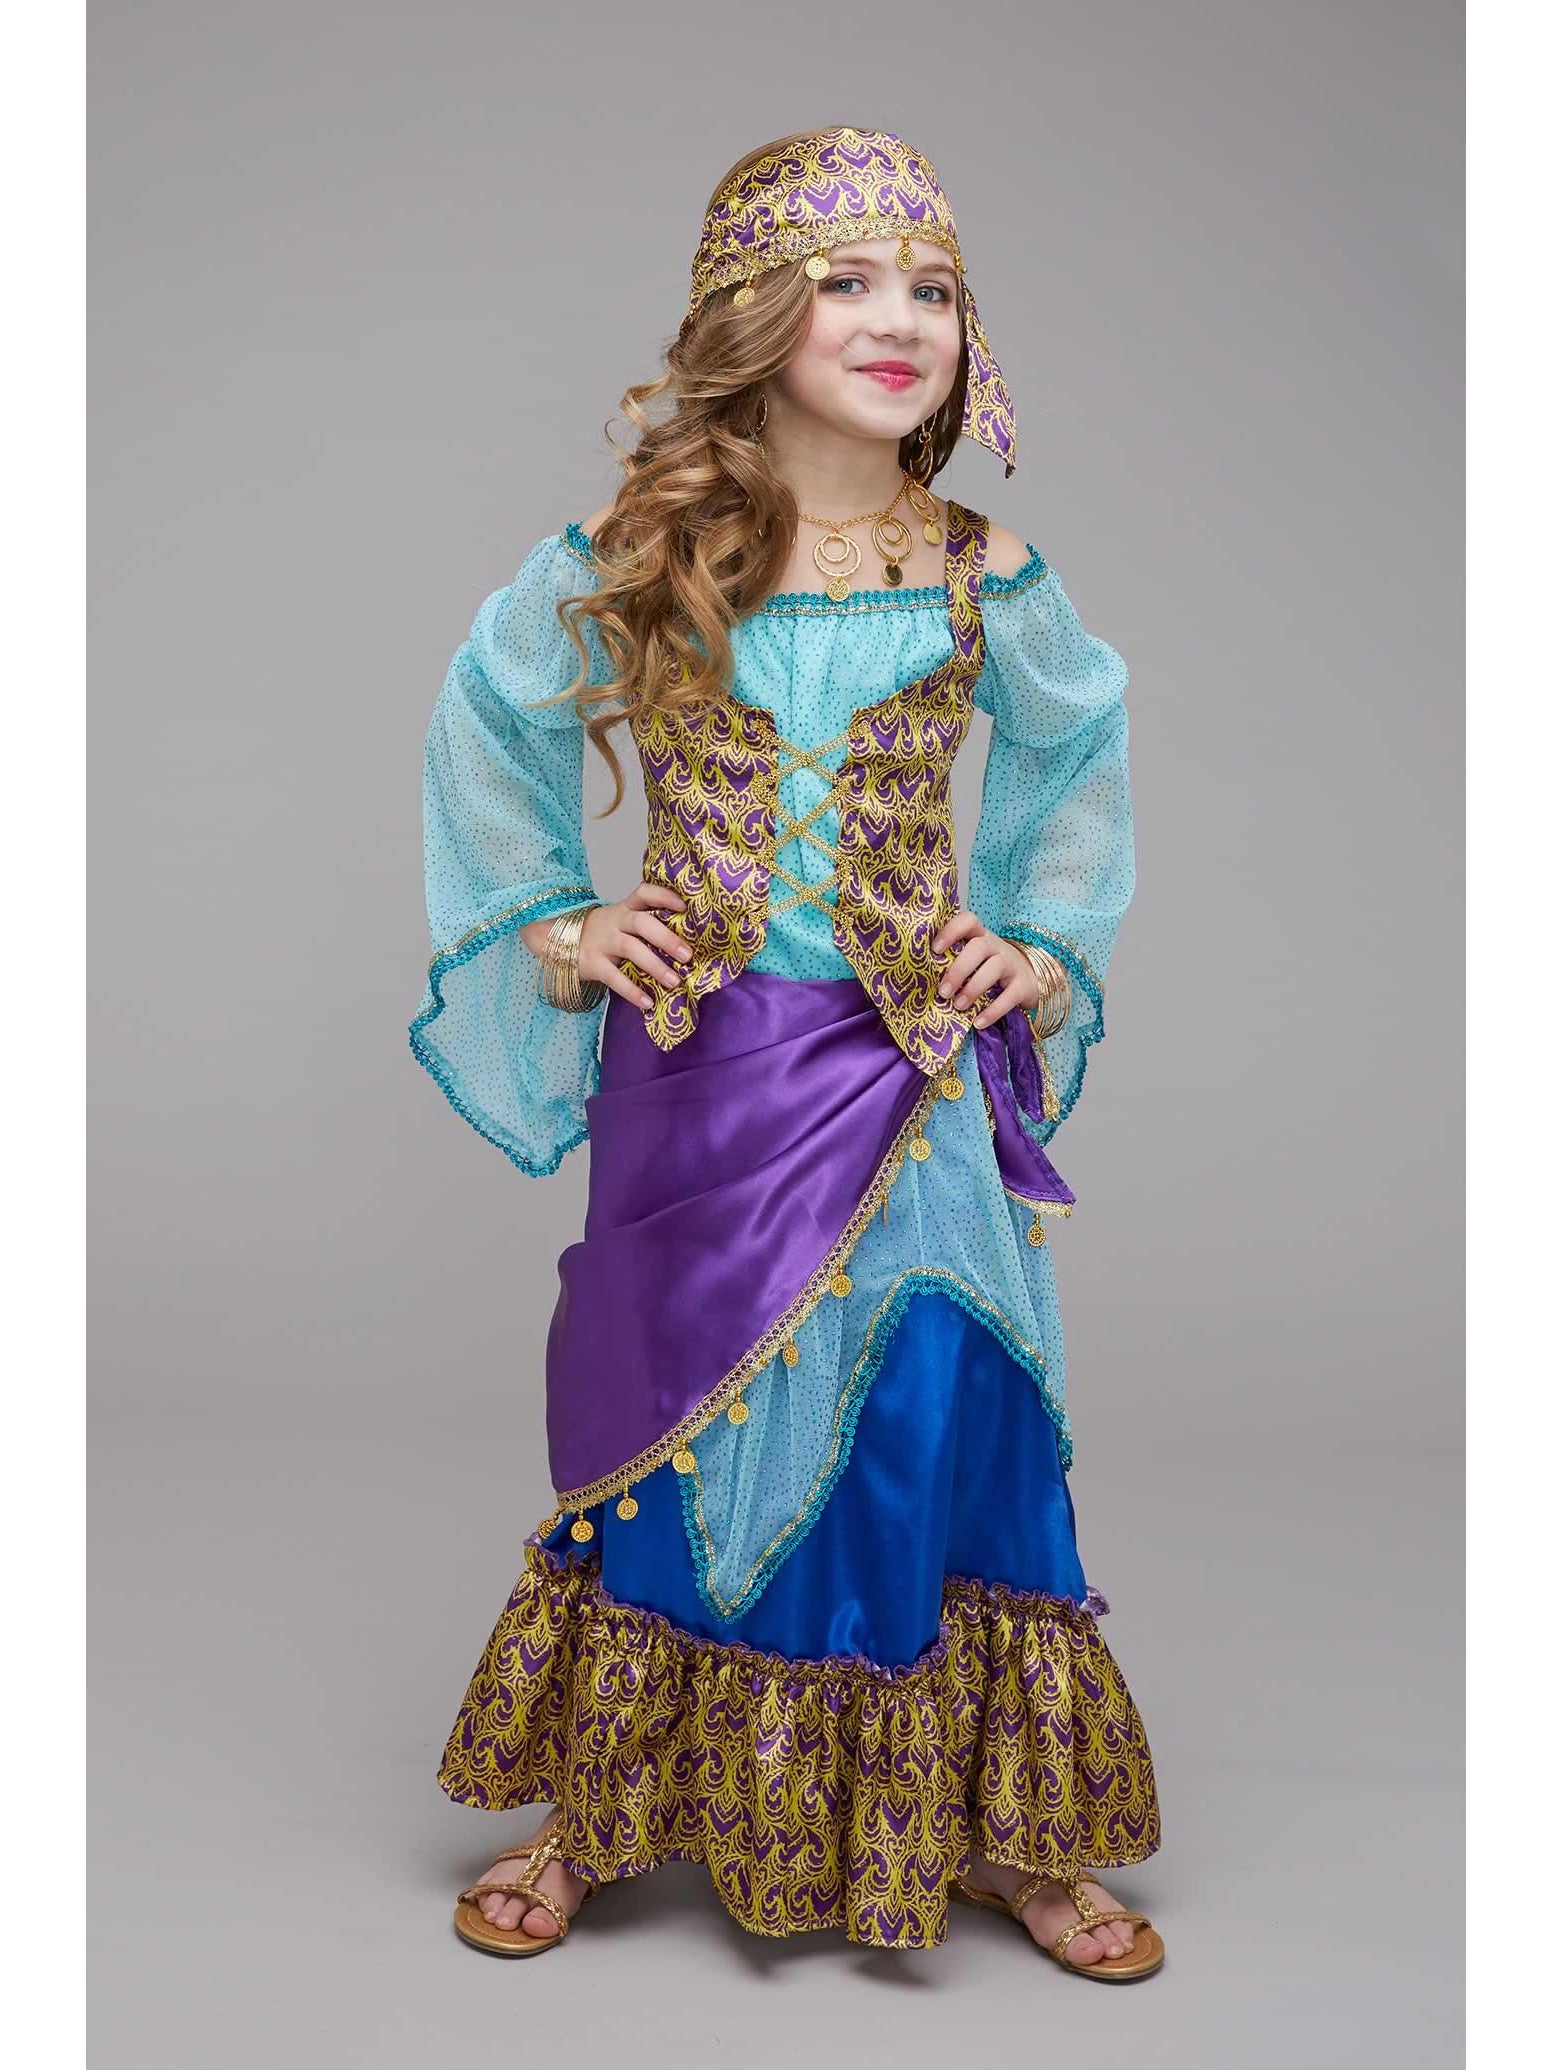 NEW Girls GYPSY Fancy Costume Fortune Teller Dress Up Childs Cosplay Dancer Kids